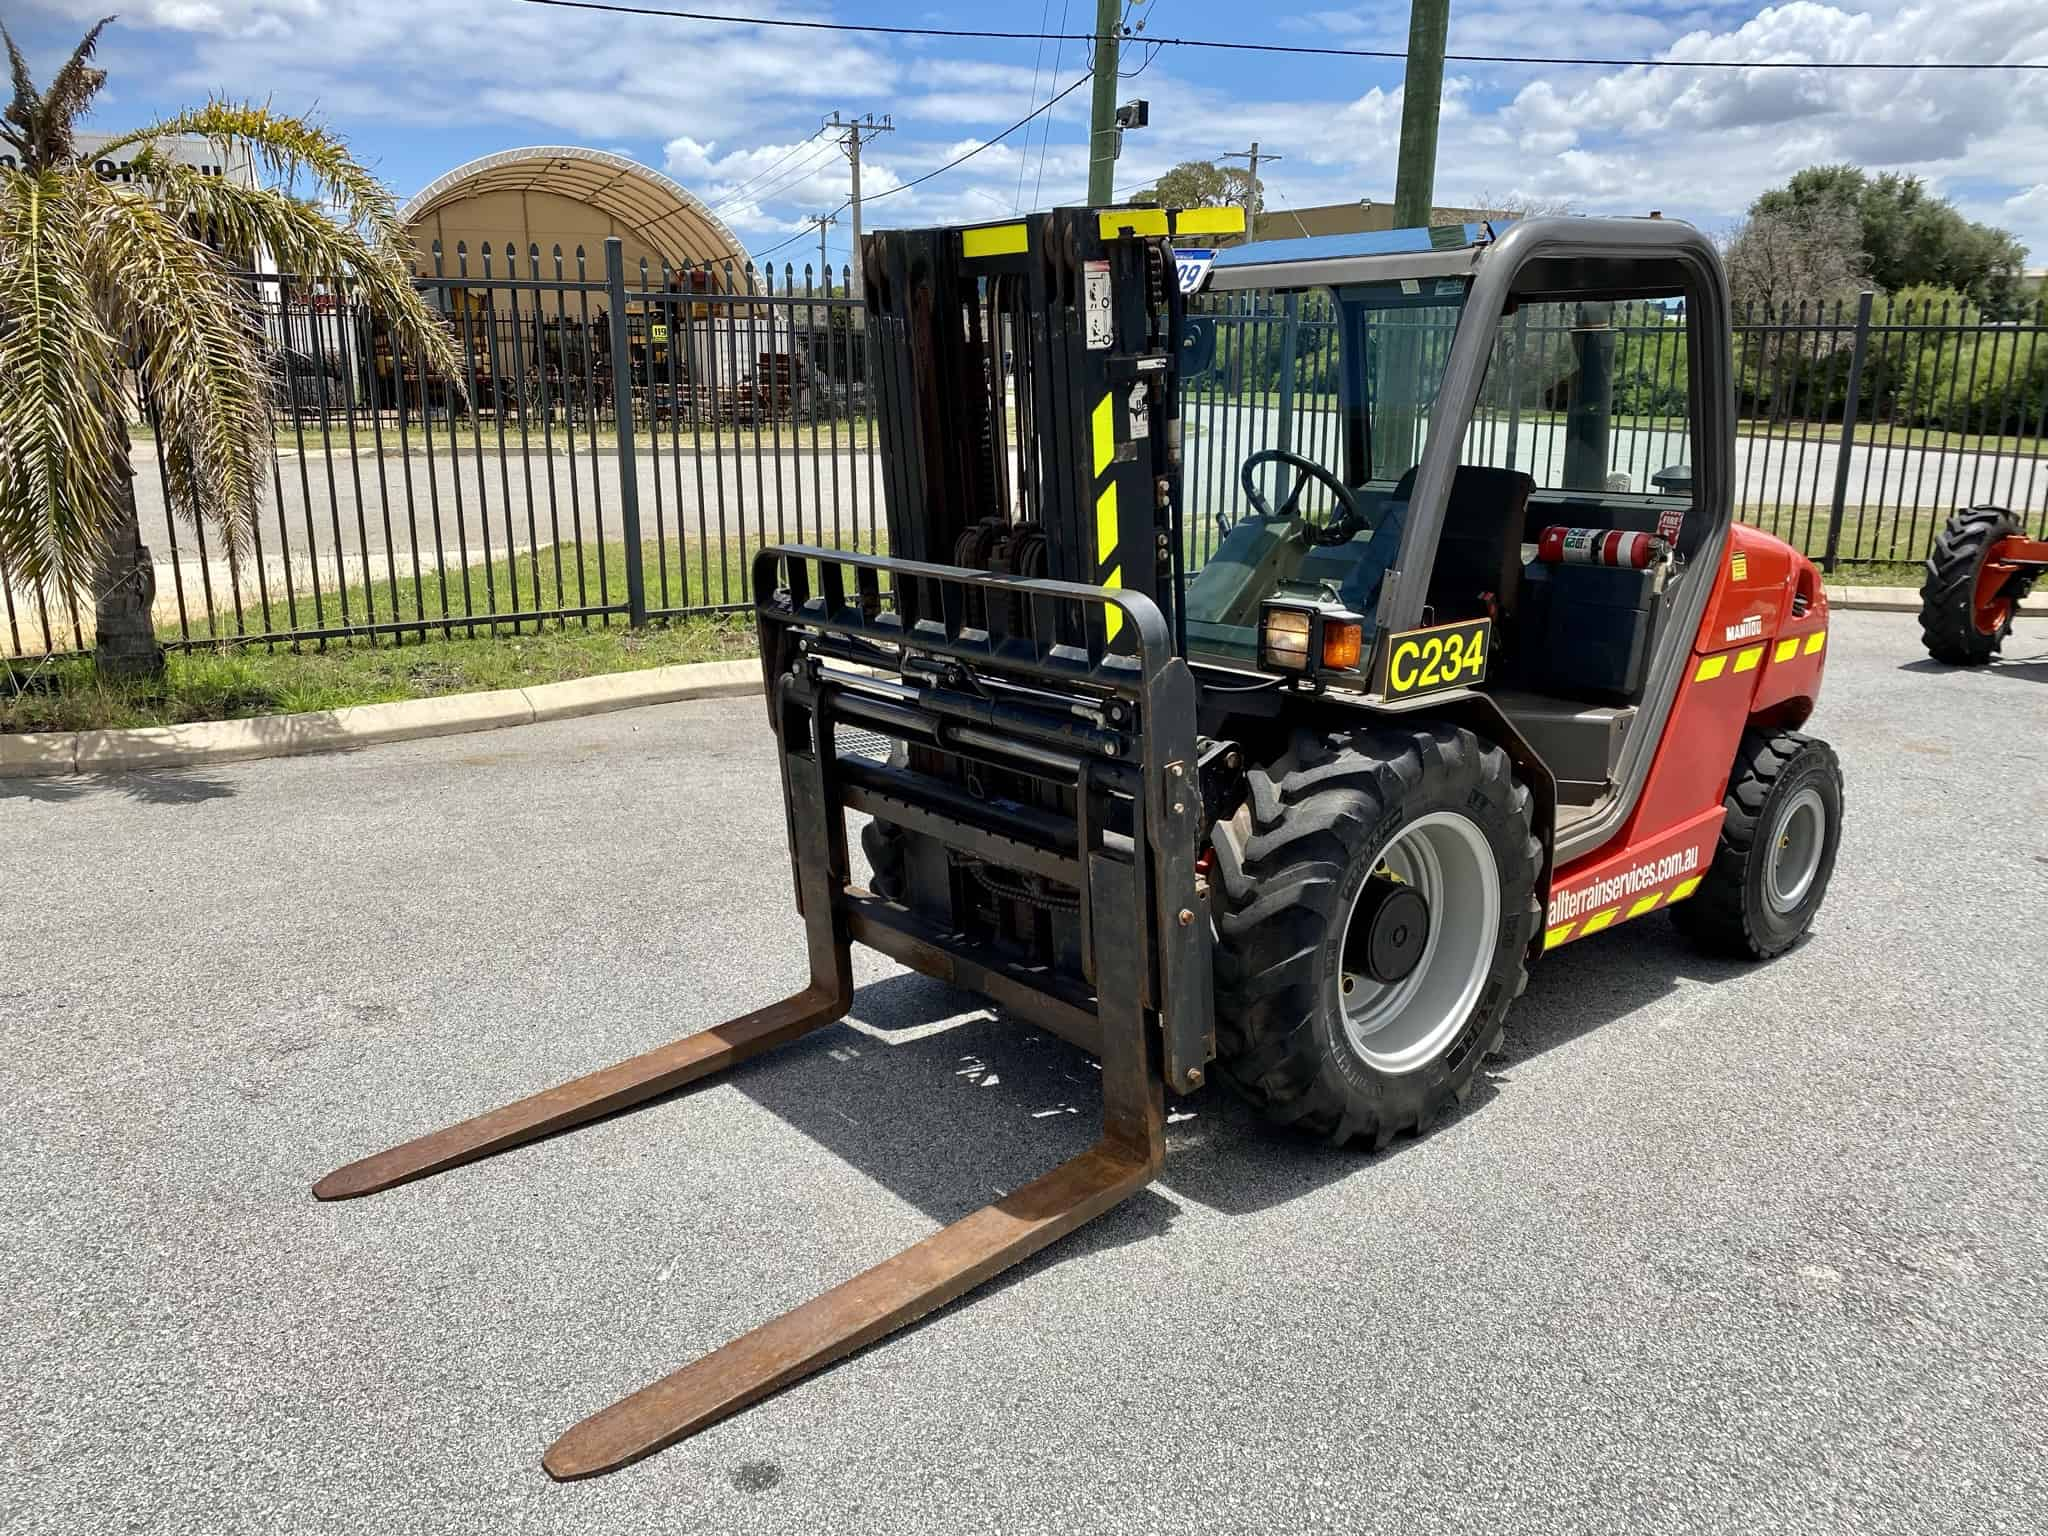 Manitou MH 25-4T Buggie rough terrain forklift service and maintenance in Perth